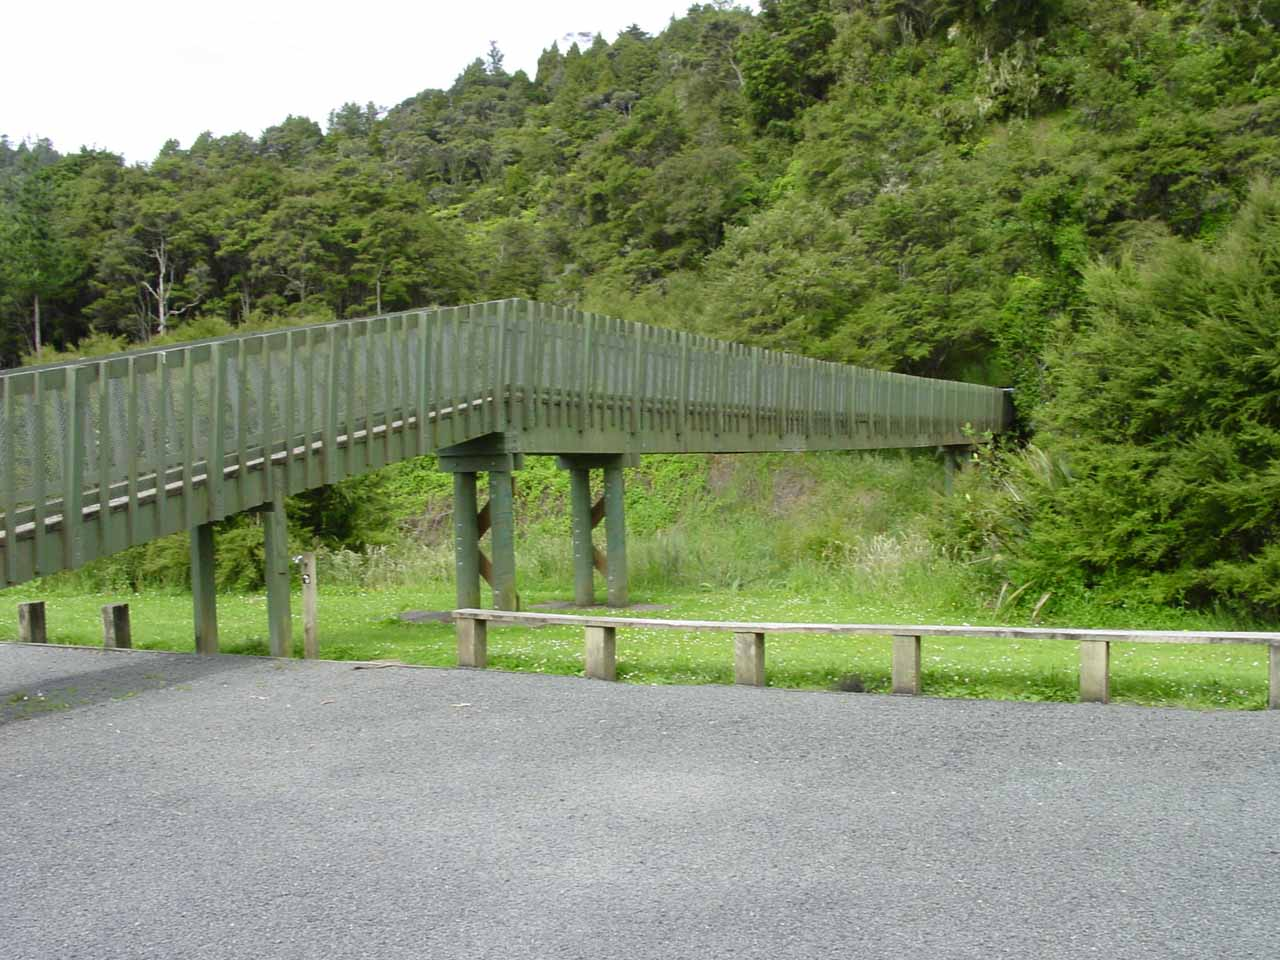 Looking at the bridge over the Hunua Stream as seen from the big car park